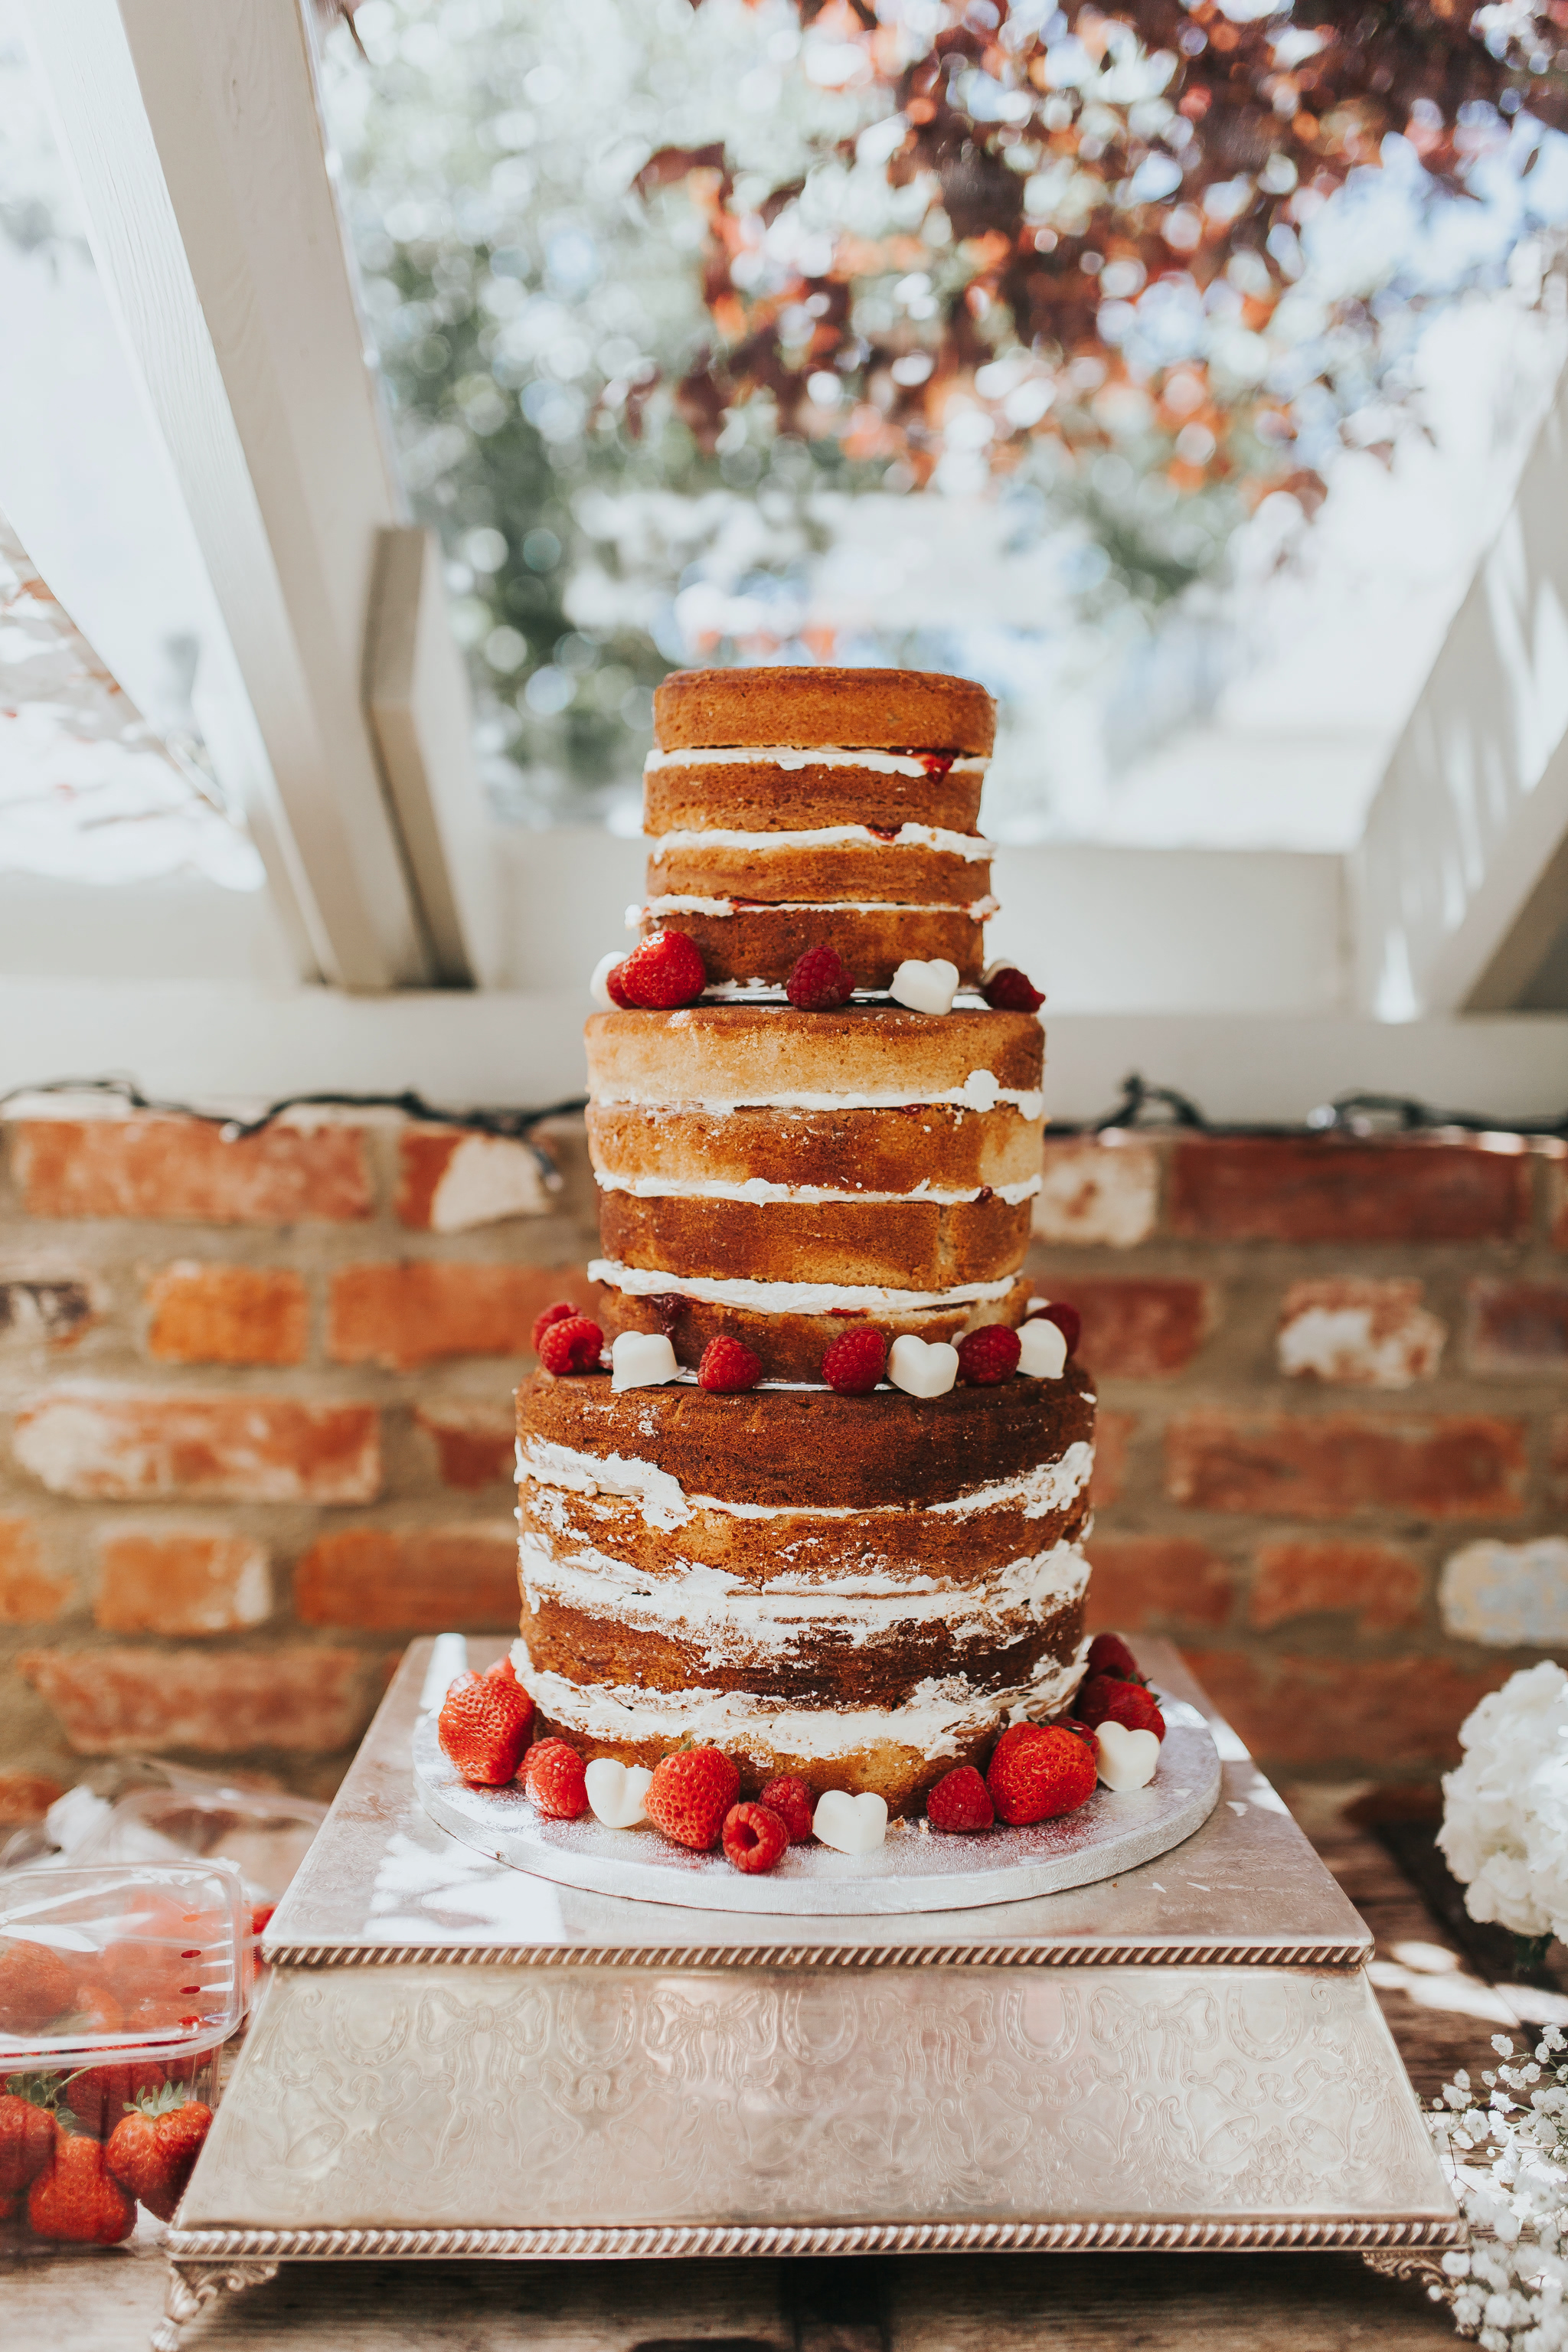 naked wedding cakes strawberries raspberries chocolate hearts wedding cake ideas